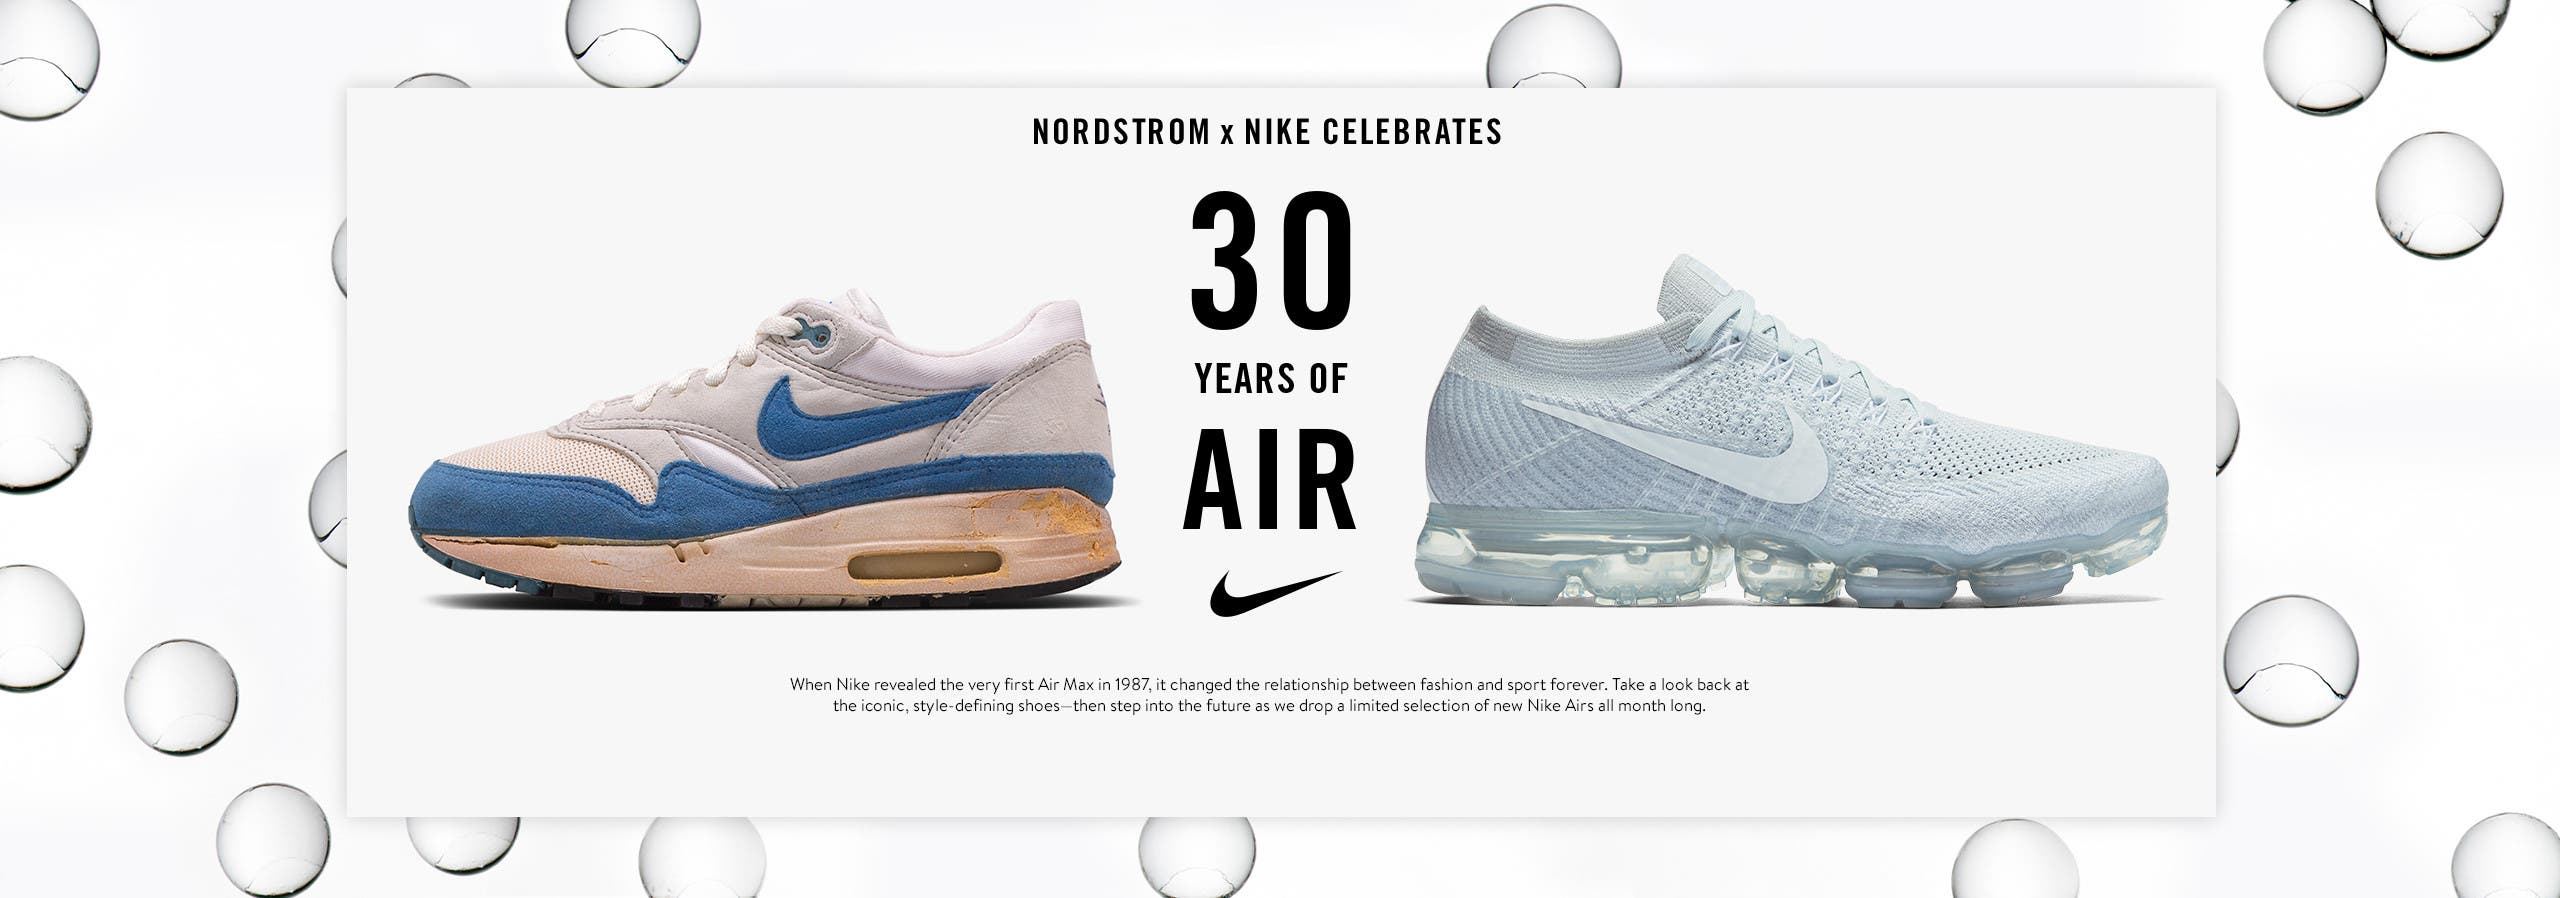 Nordstrom x Nike Air Max: 30th anniversary shop-in-shop.